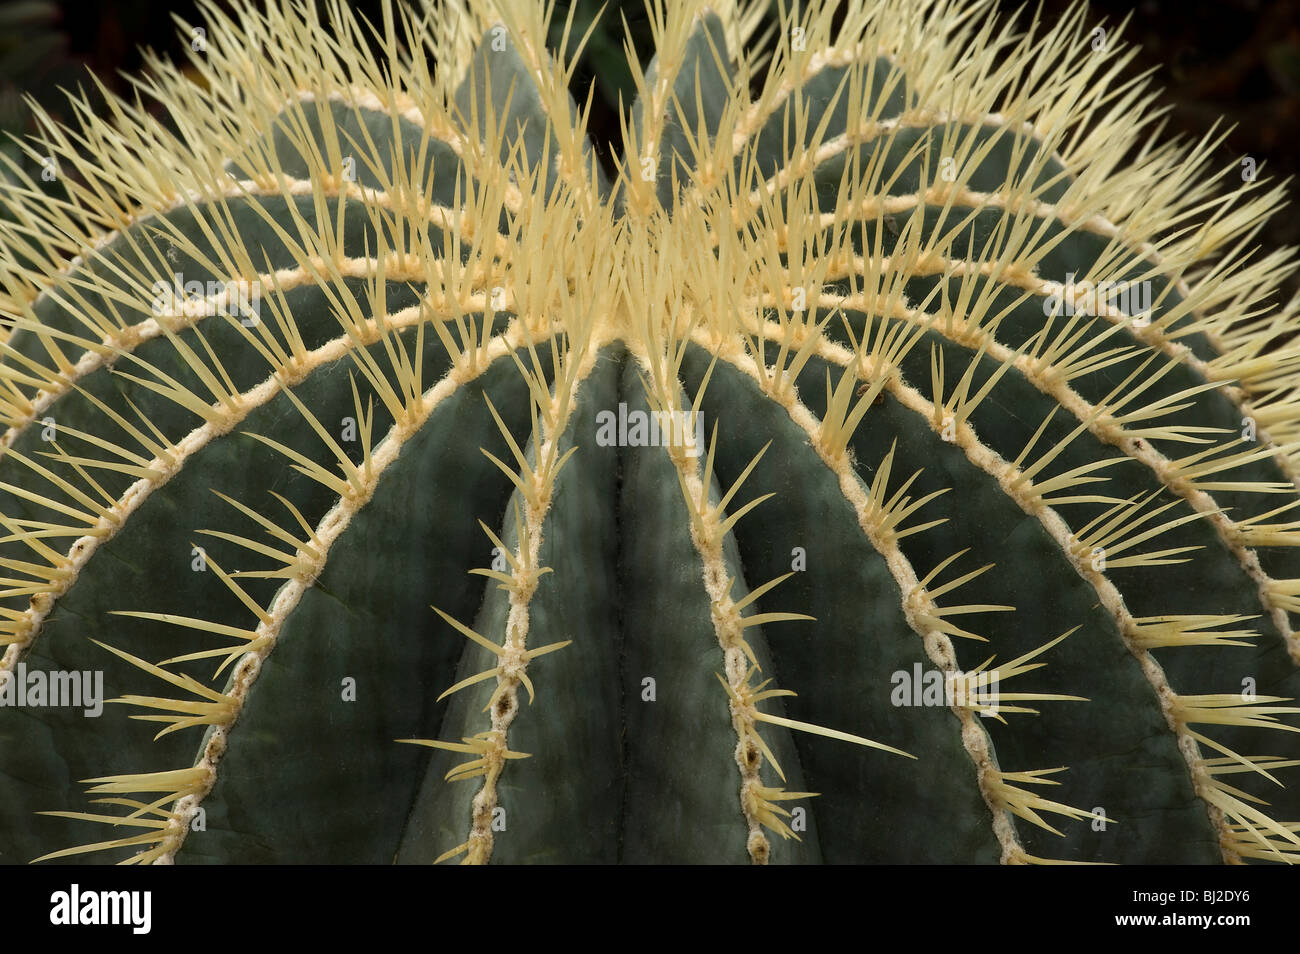 Ferocactus glaucescens with spines emerging from ribs N E Mexico - Stock Image